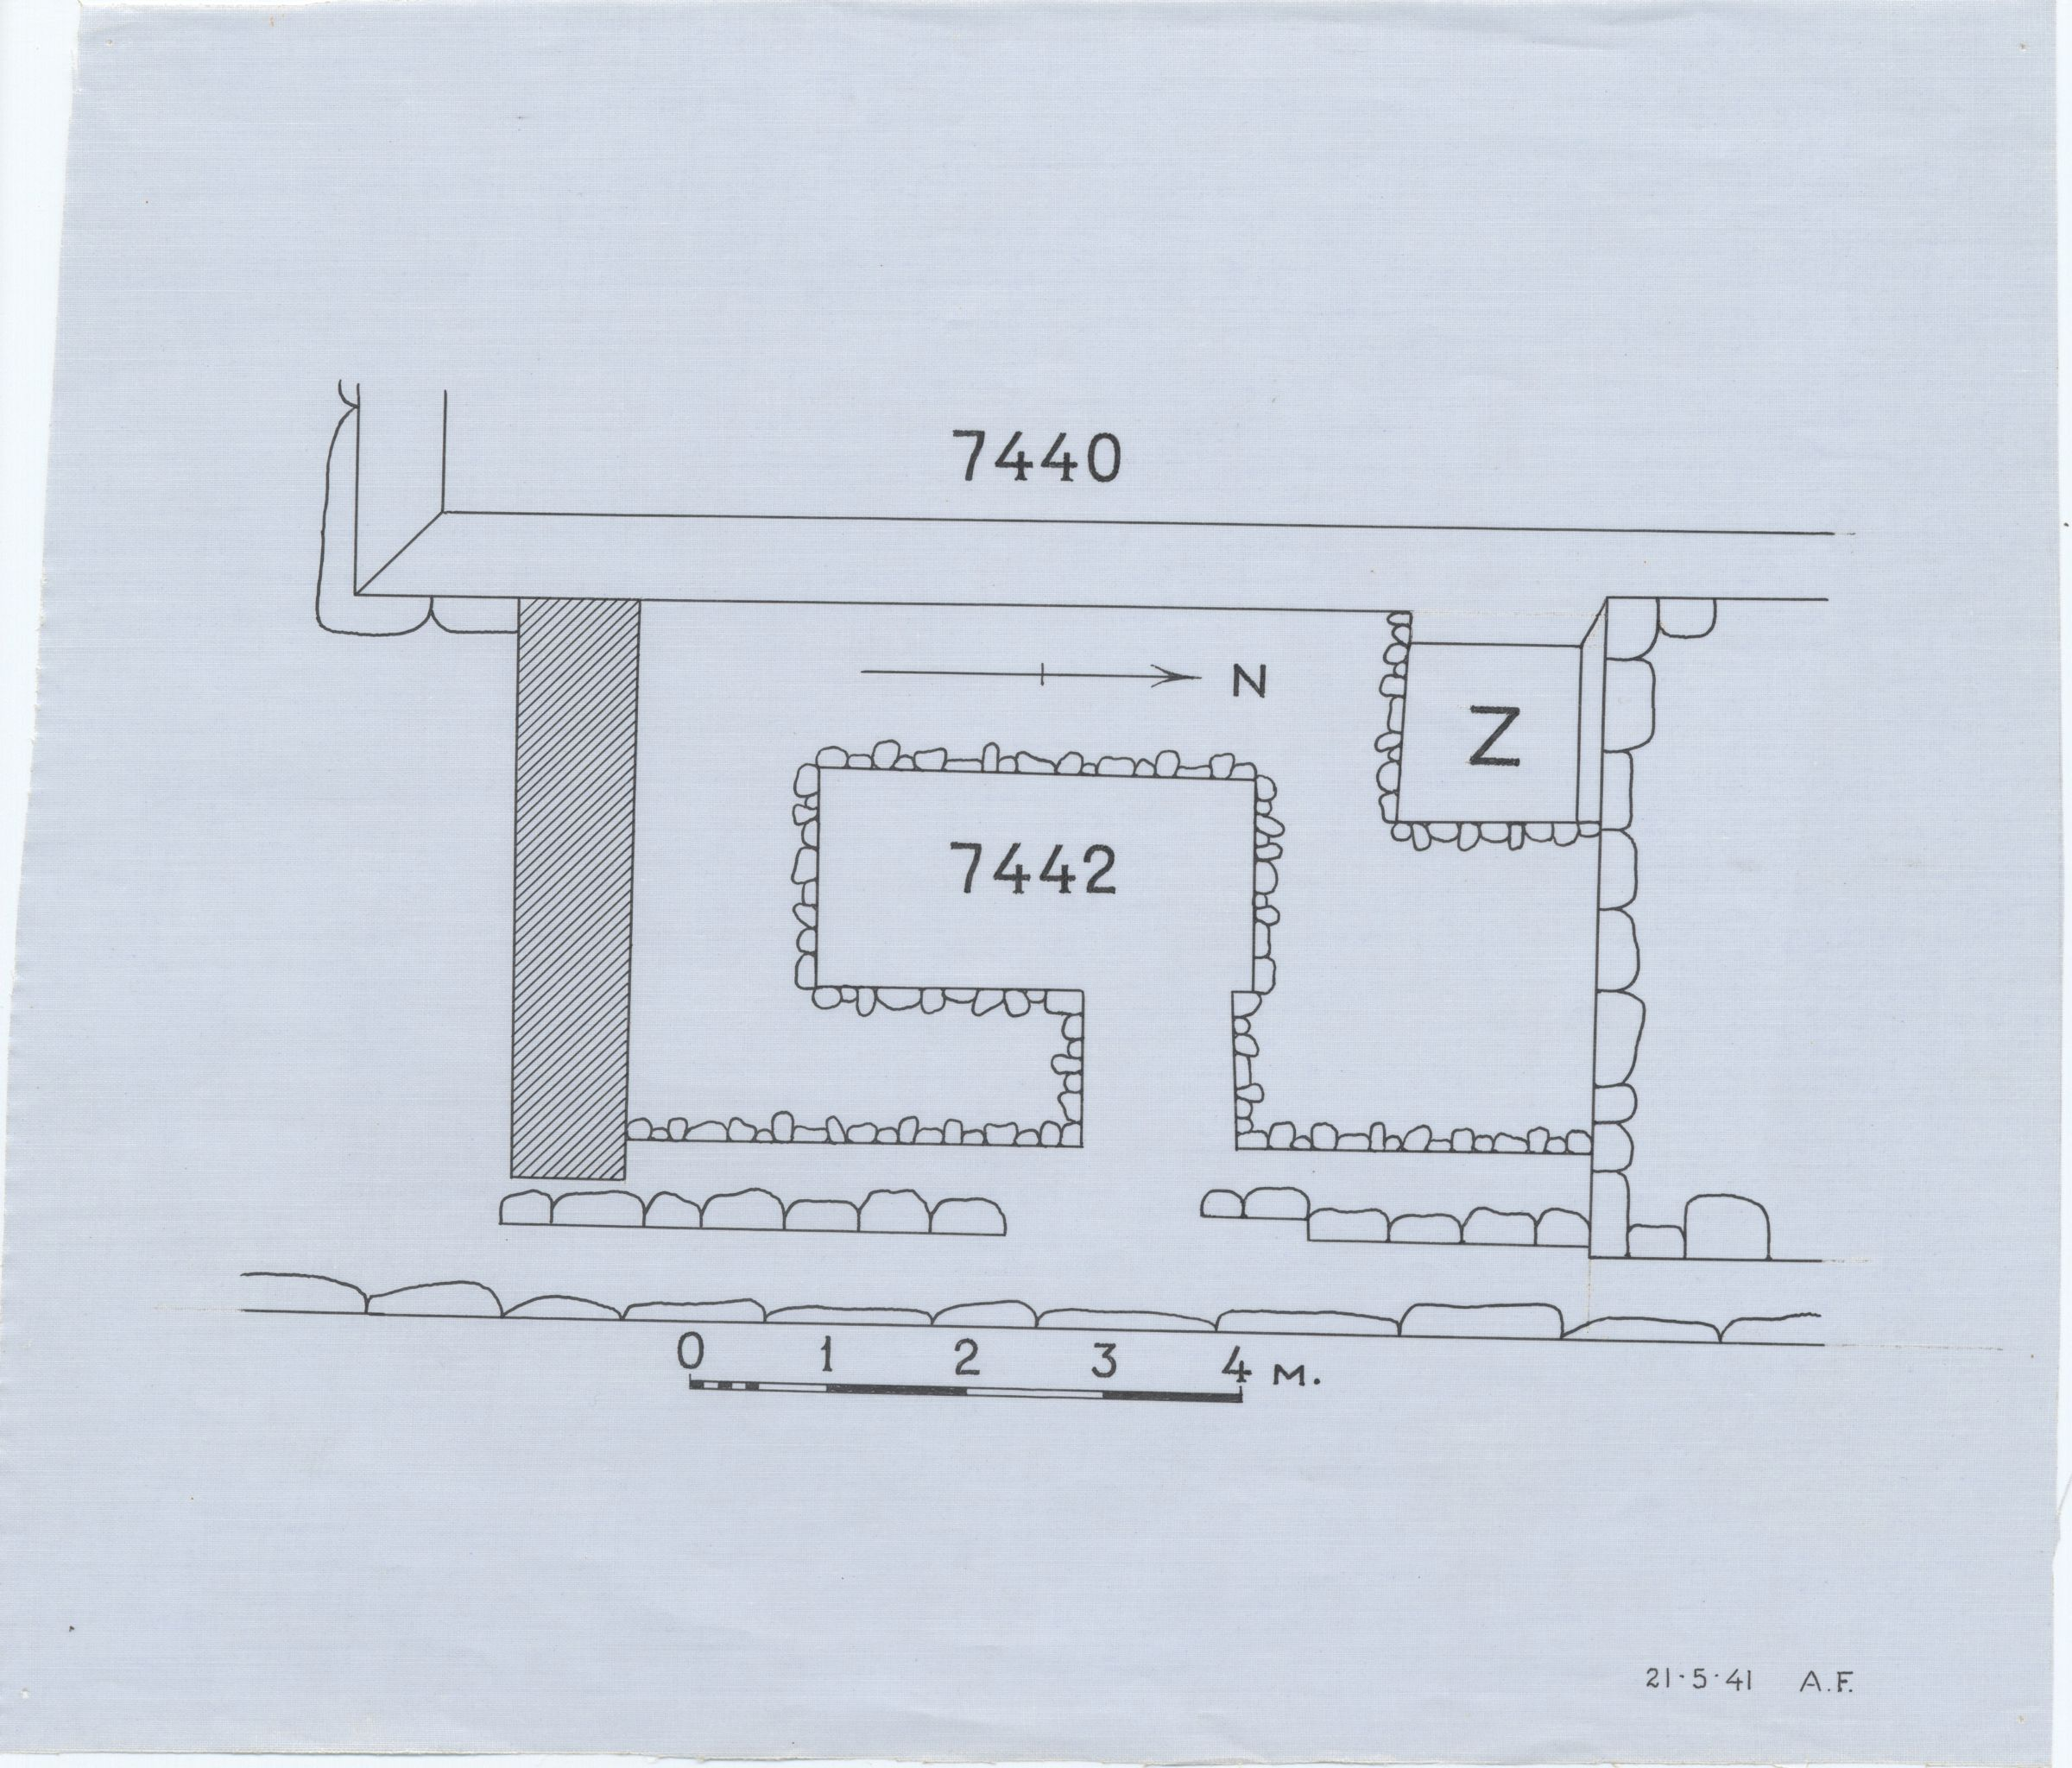 Maps and plans: Plan of G 7442, with position of G 7430-7440: G 7440